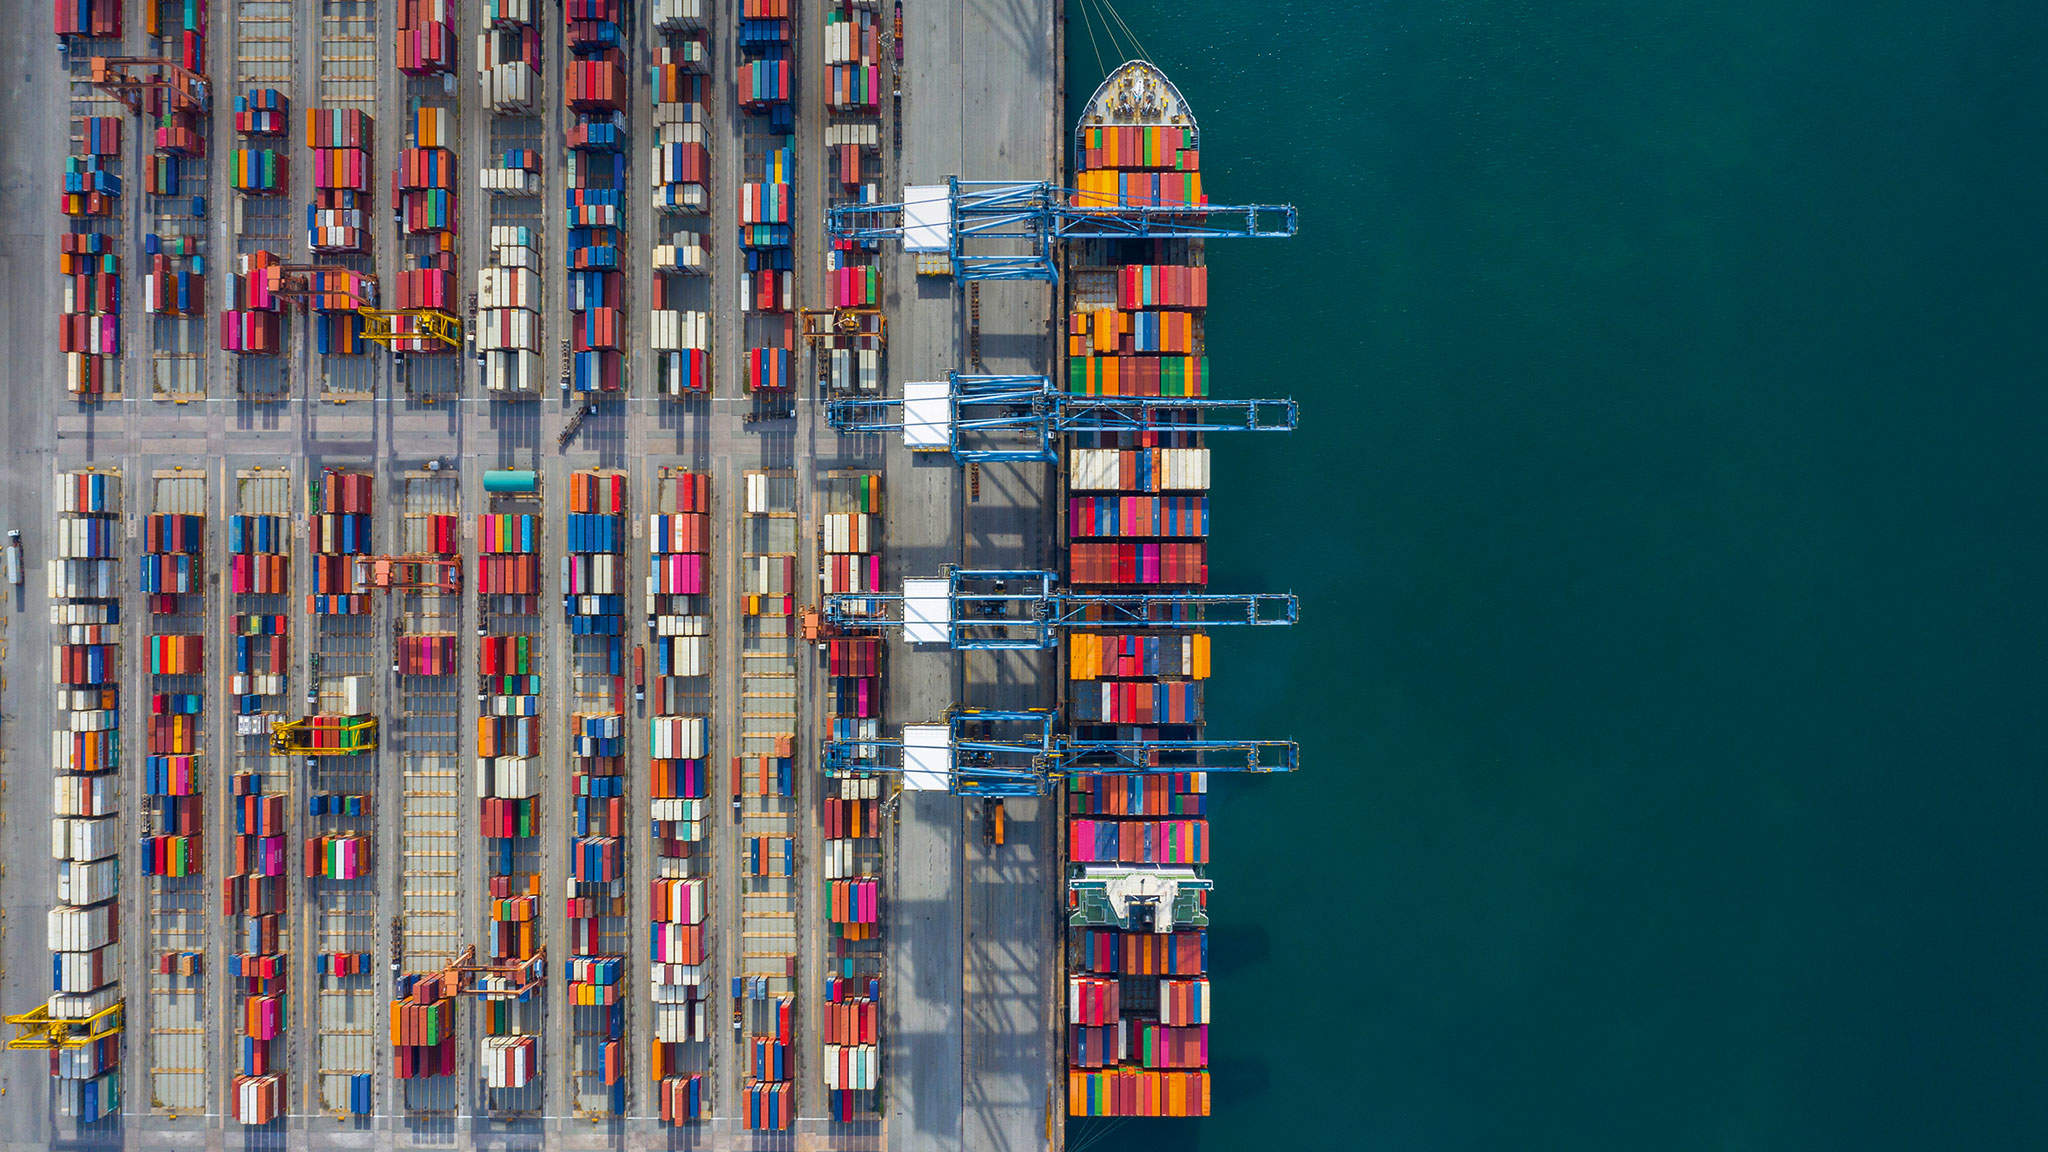 Sea freight connects different worlds